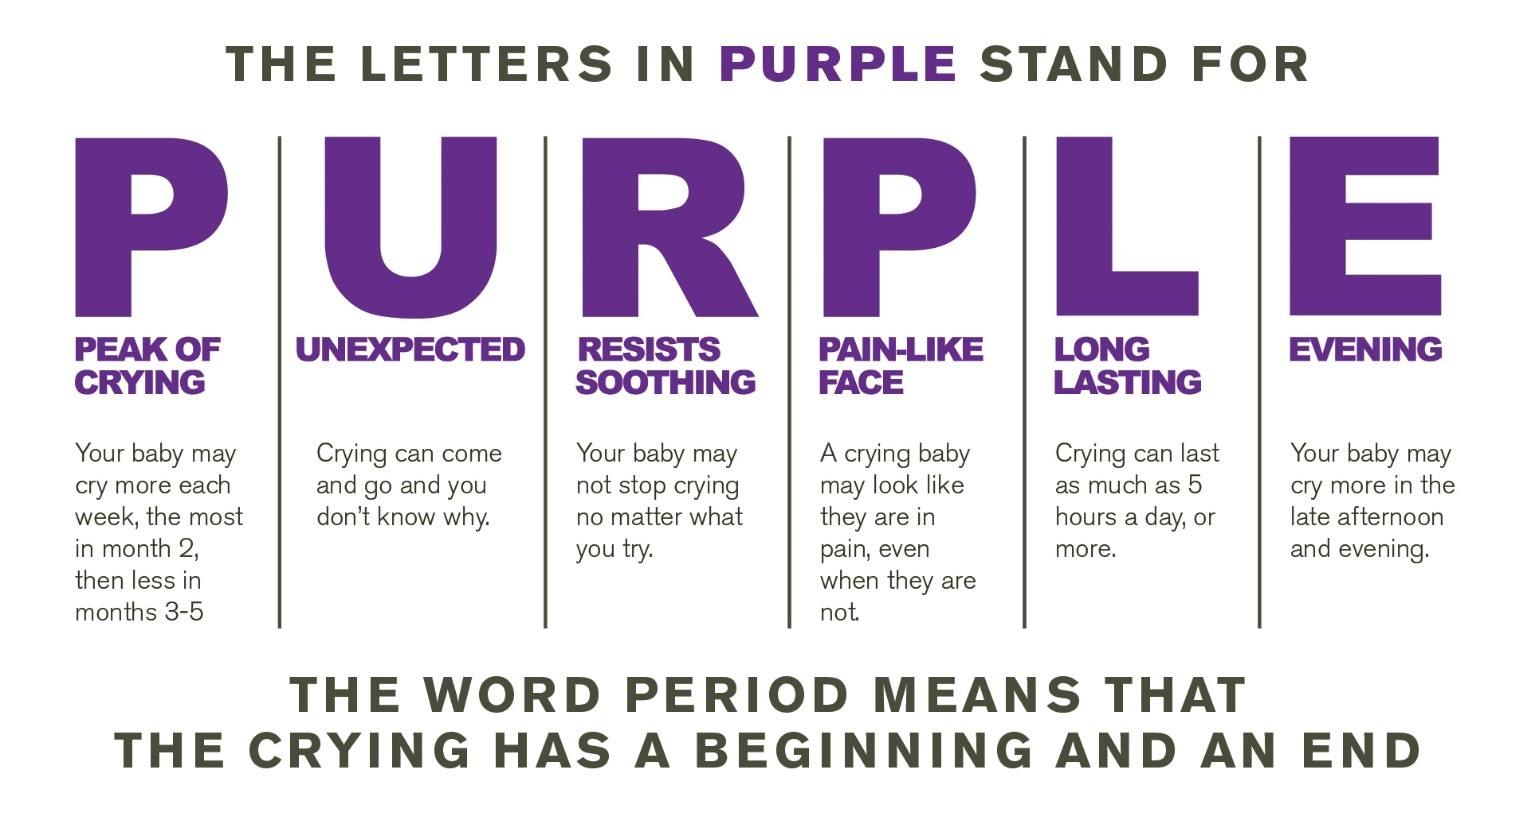 Period of PURPLE crying graphic